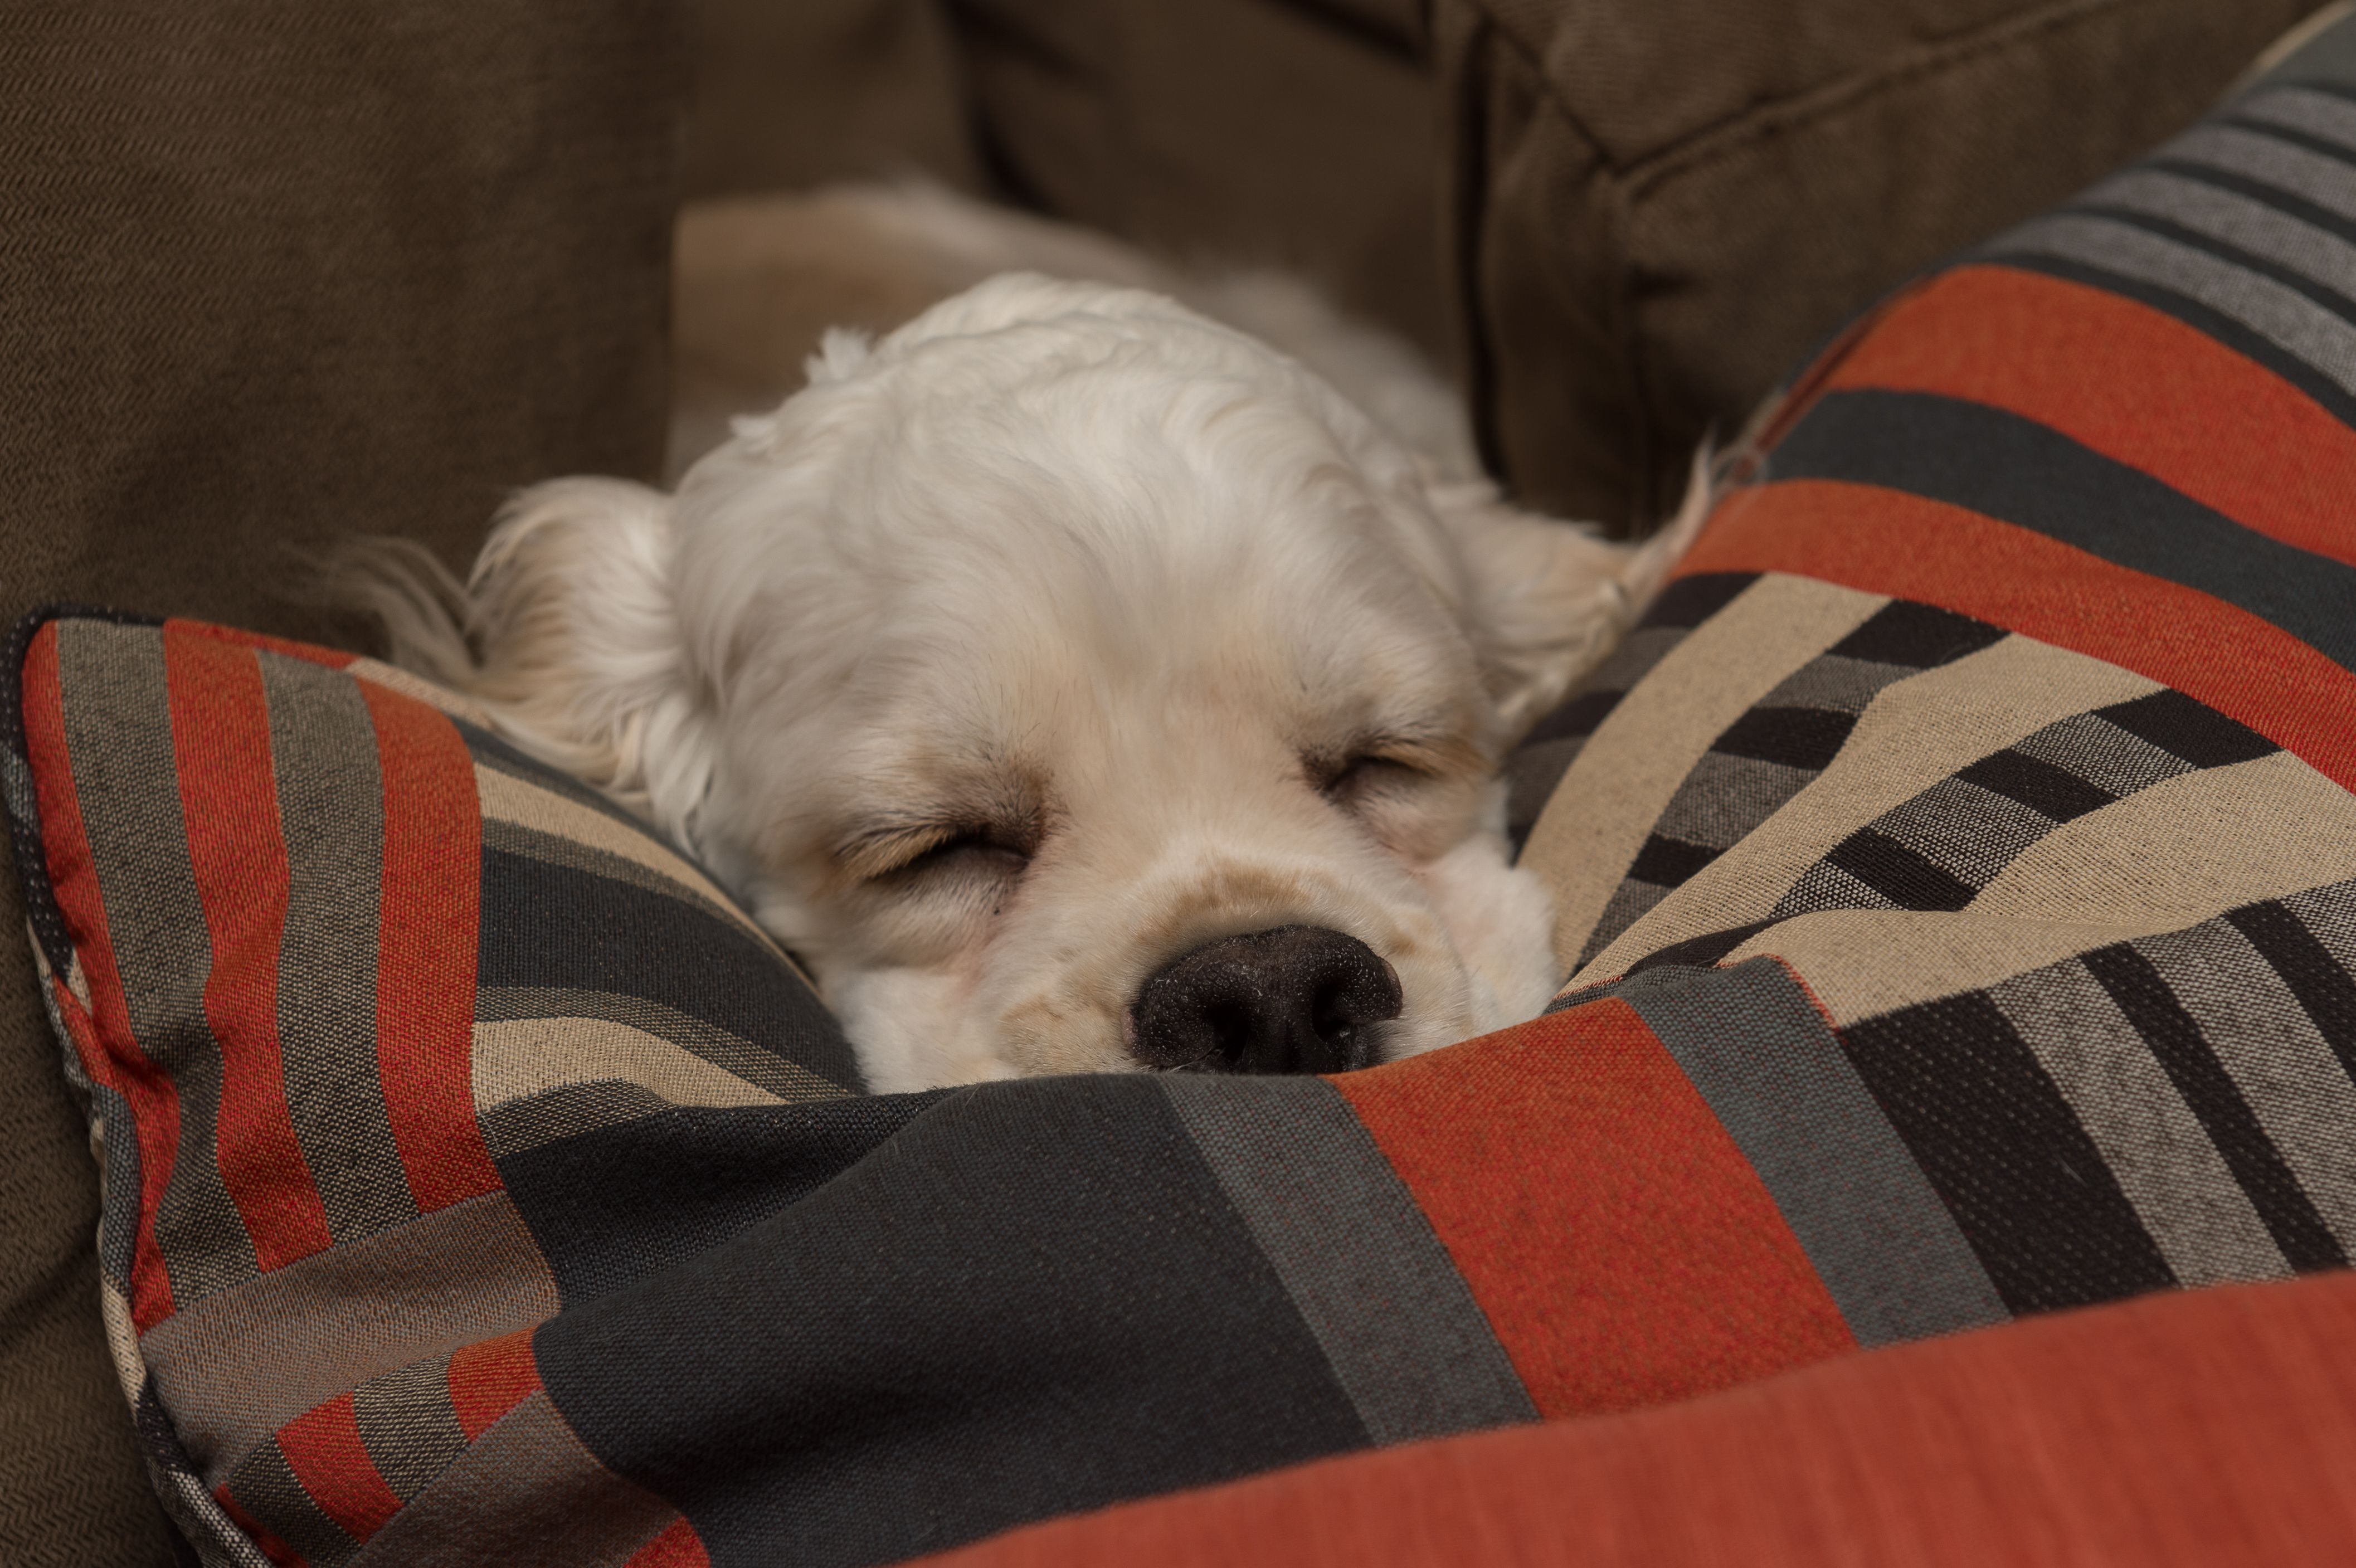 Sweet Dreams Are Made of This - Gus the Silver American Cocker Spaniel Puppy! - www.silvergus.com